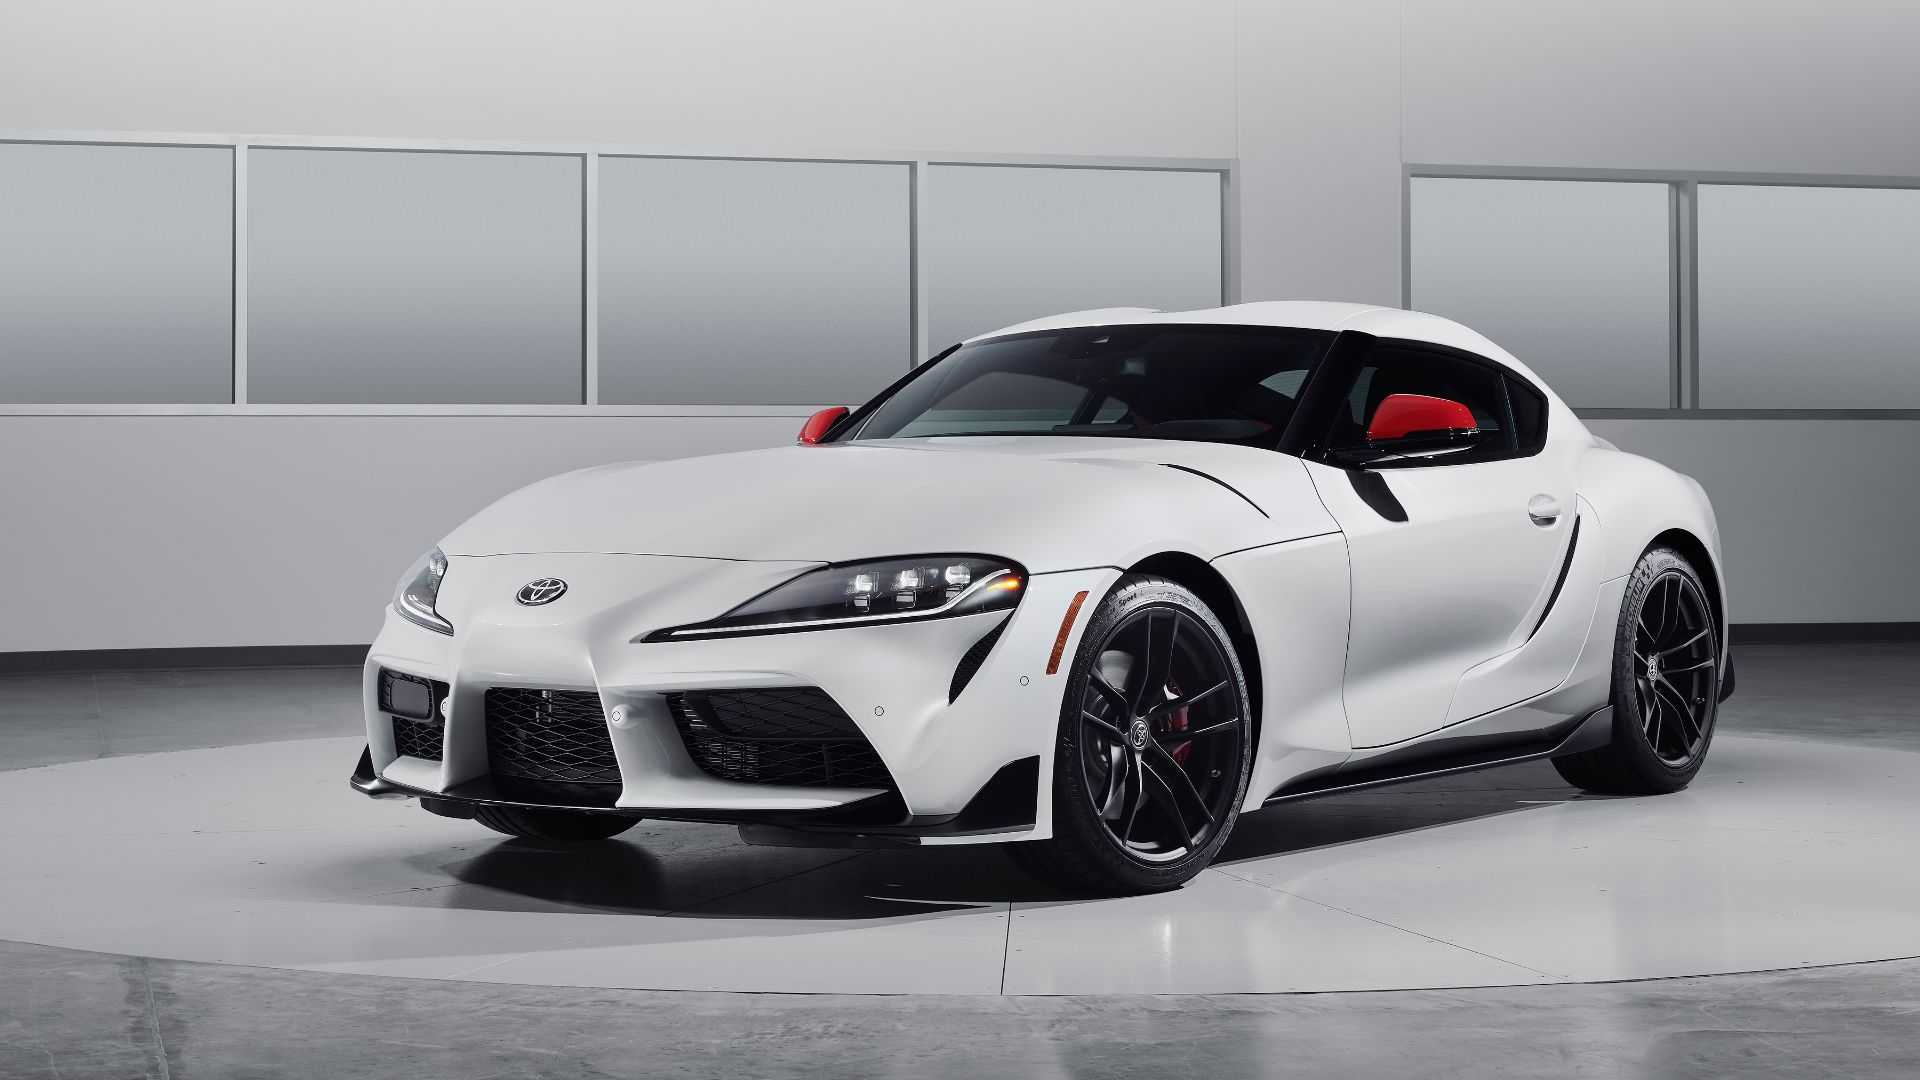 69 Great Cost Of 2020 Toyota Supra Interior by Cost Of 2020 Toyota Supra